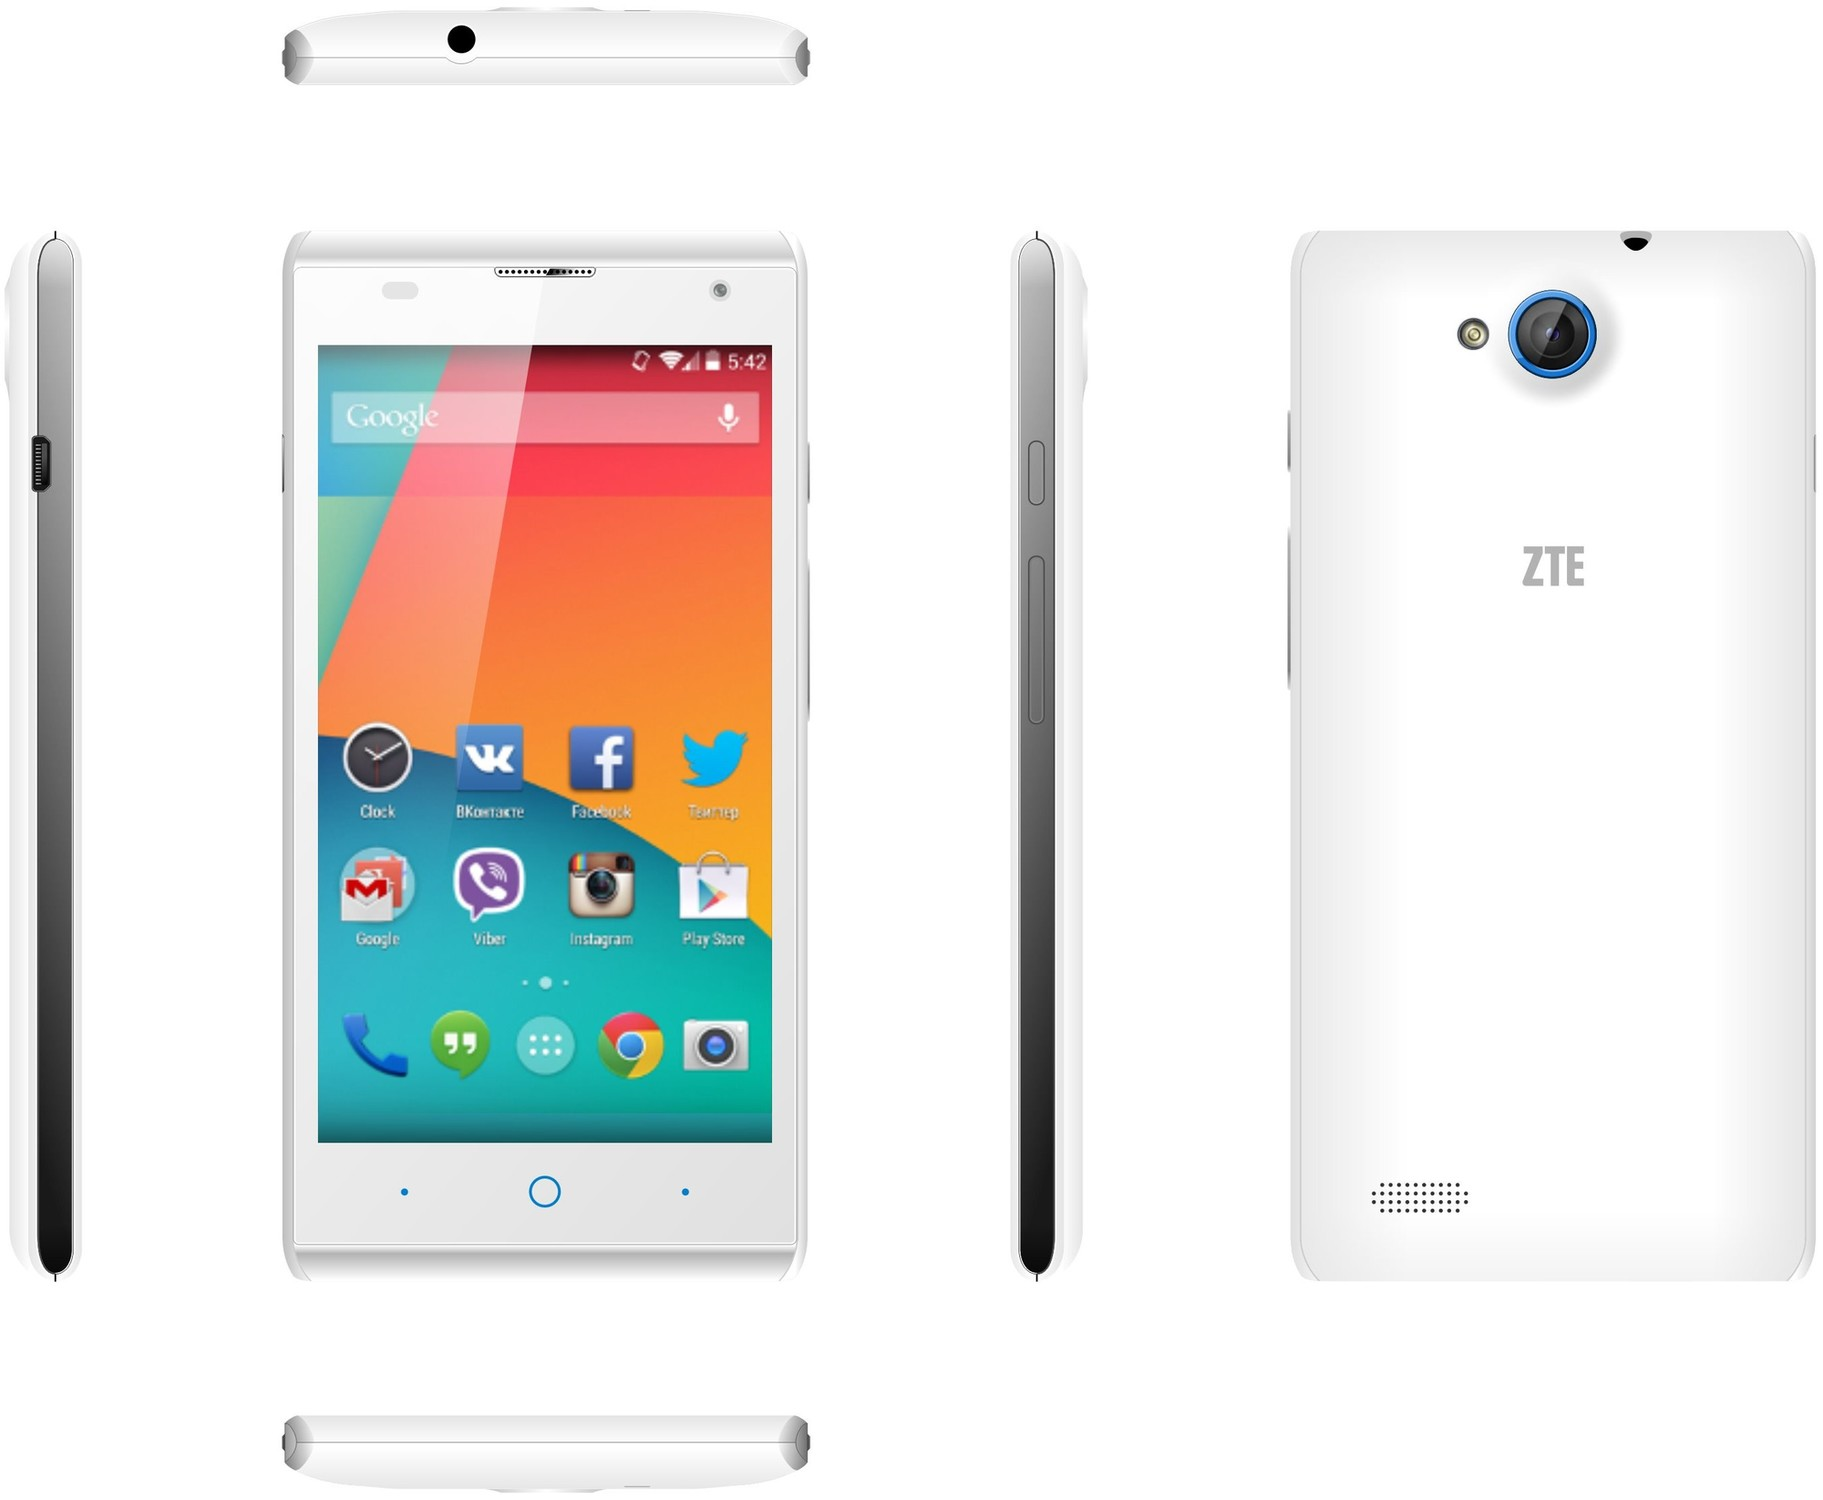 zte blade g lux specs Android allows you